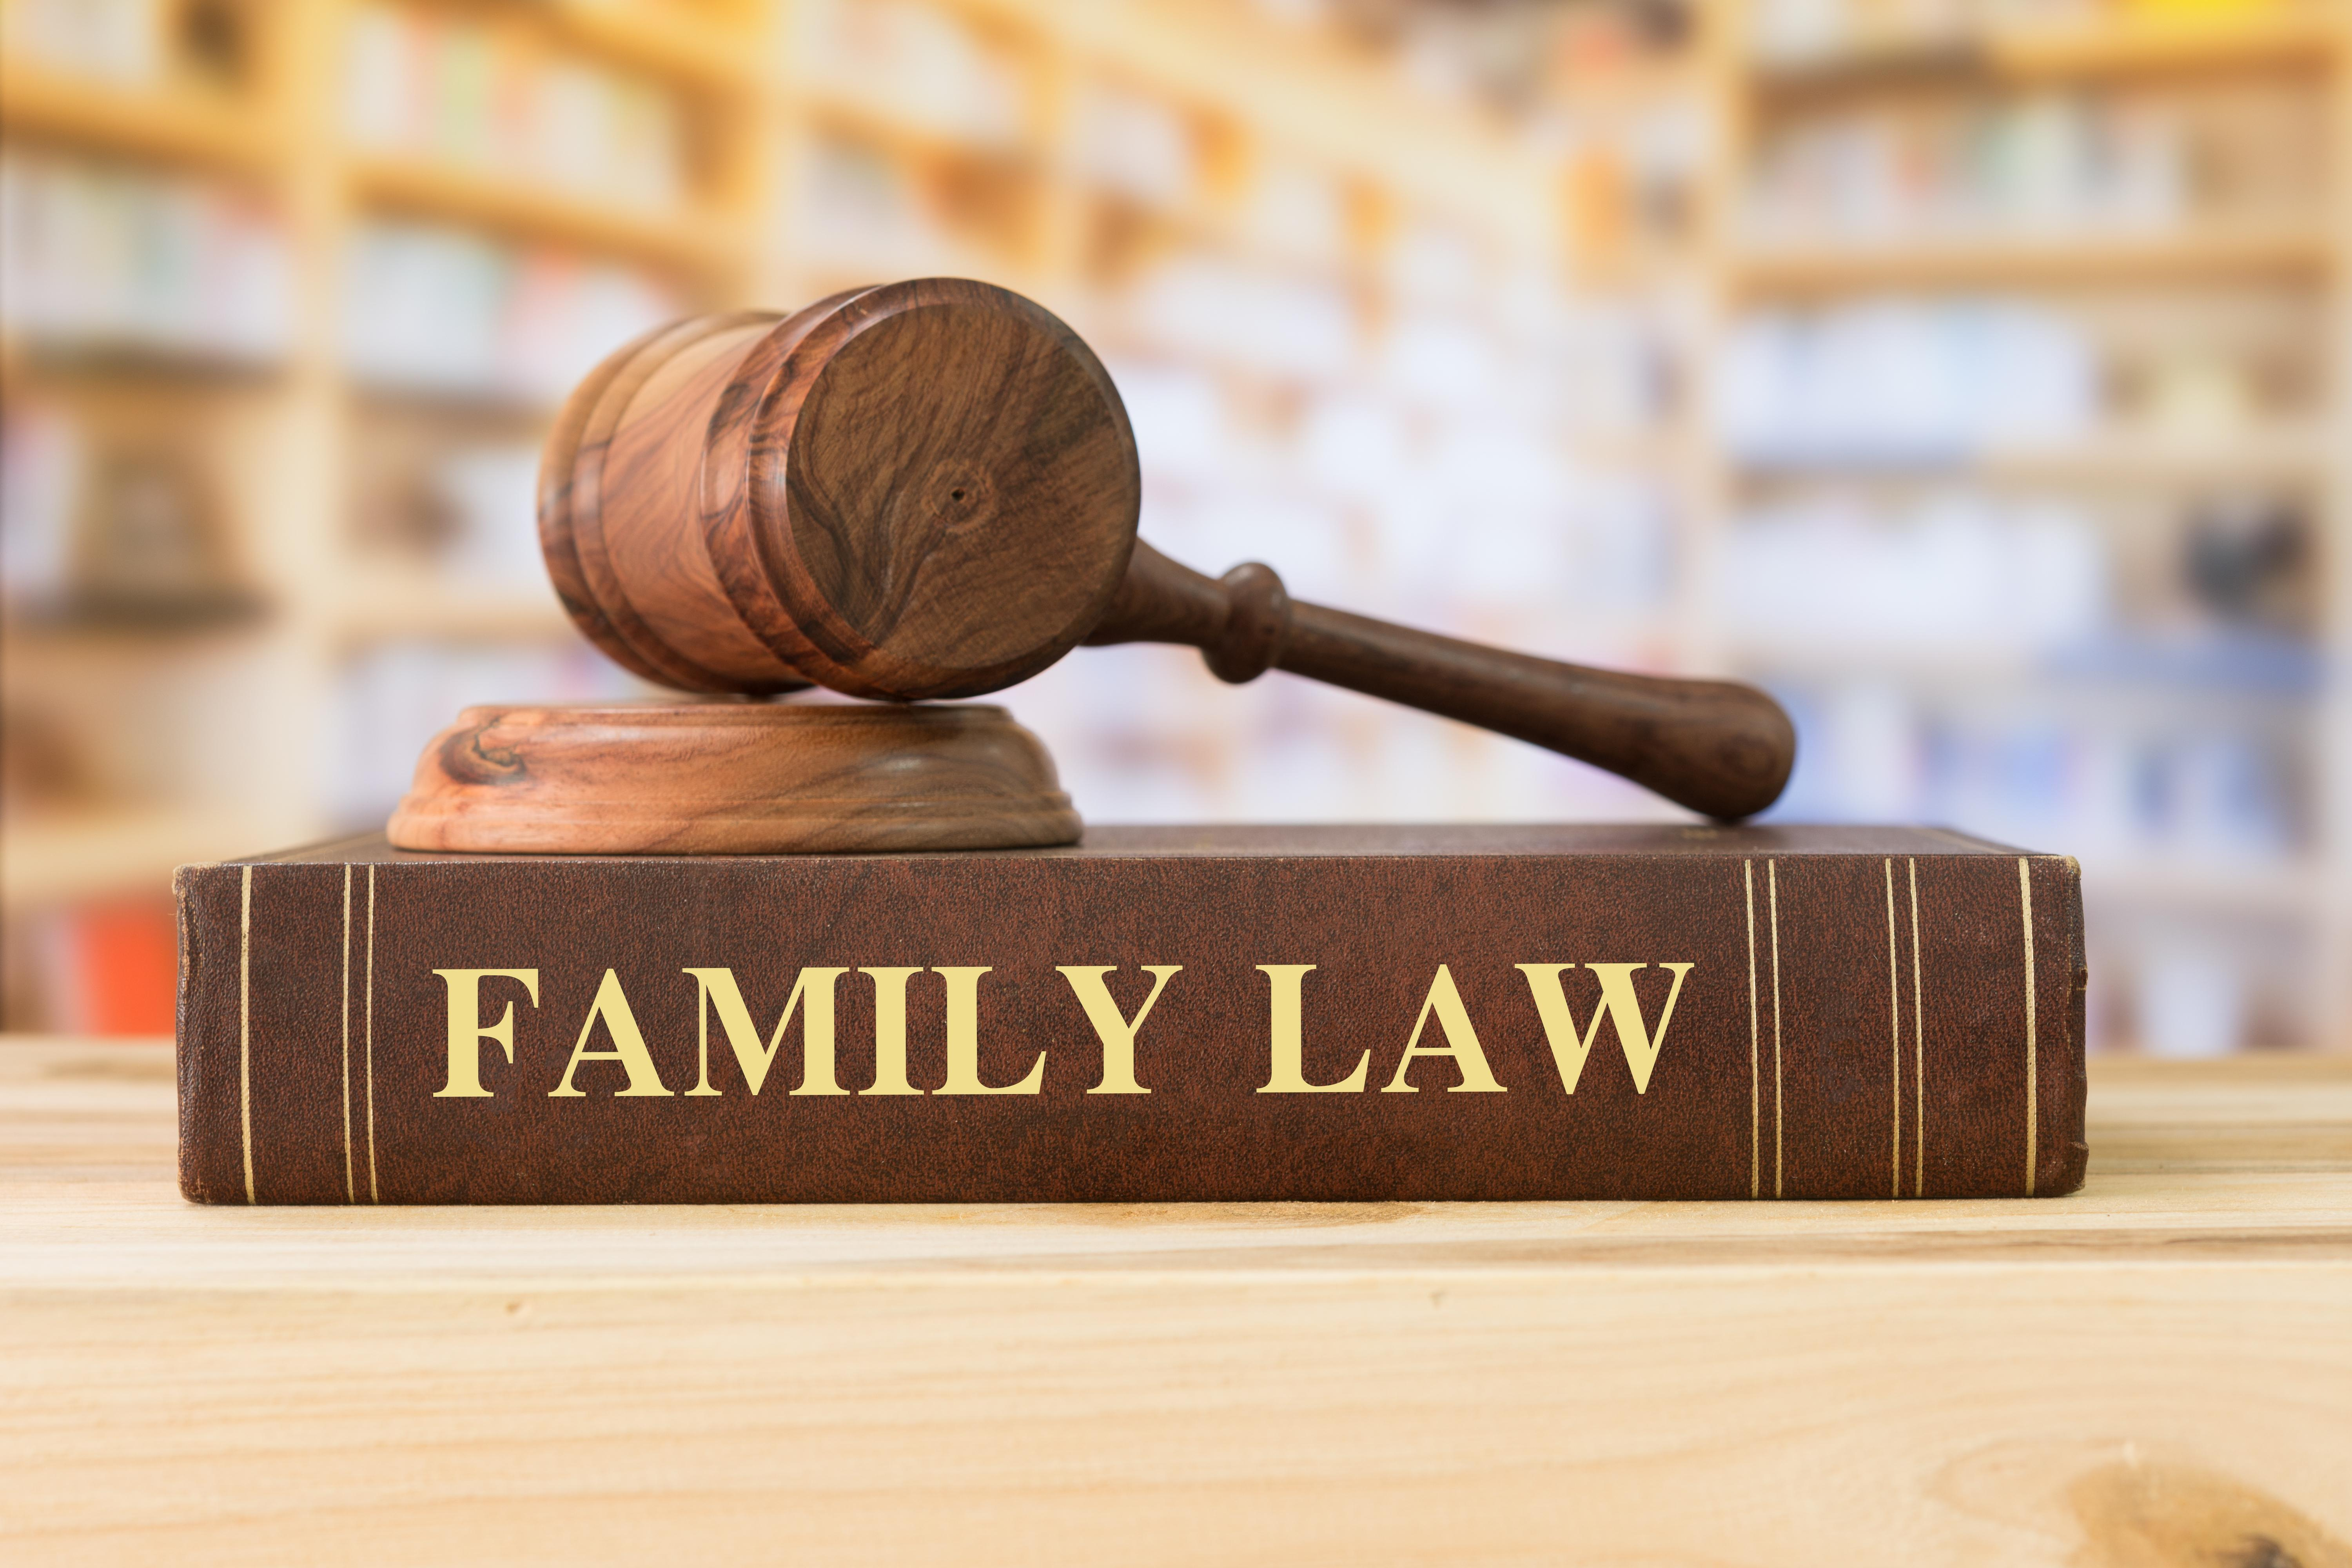 Family Law Gavel Book